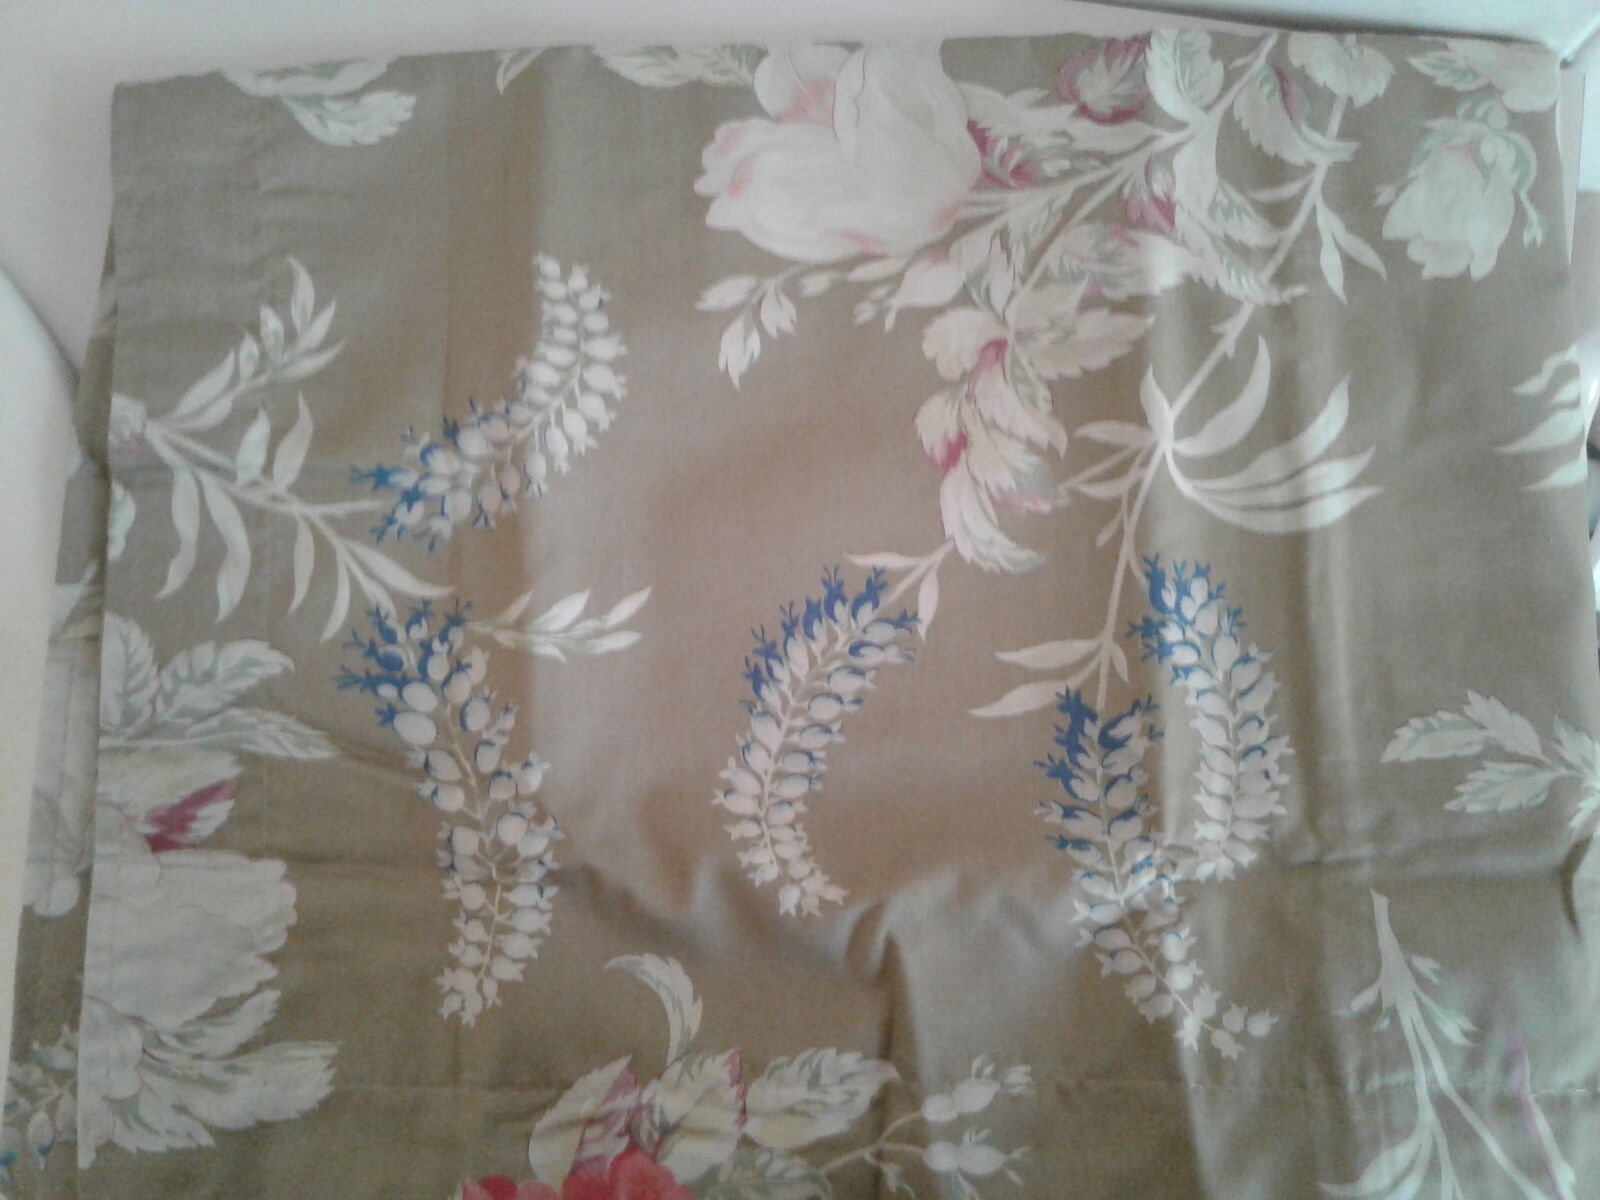 Ralph Lauren Boathouse Floral Collection Twin Flat Sheet, Sham Brand New in pkg